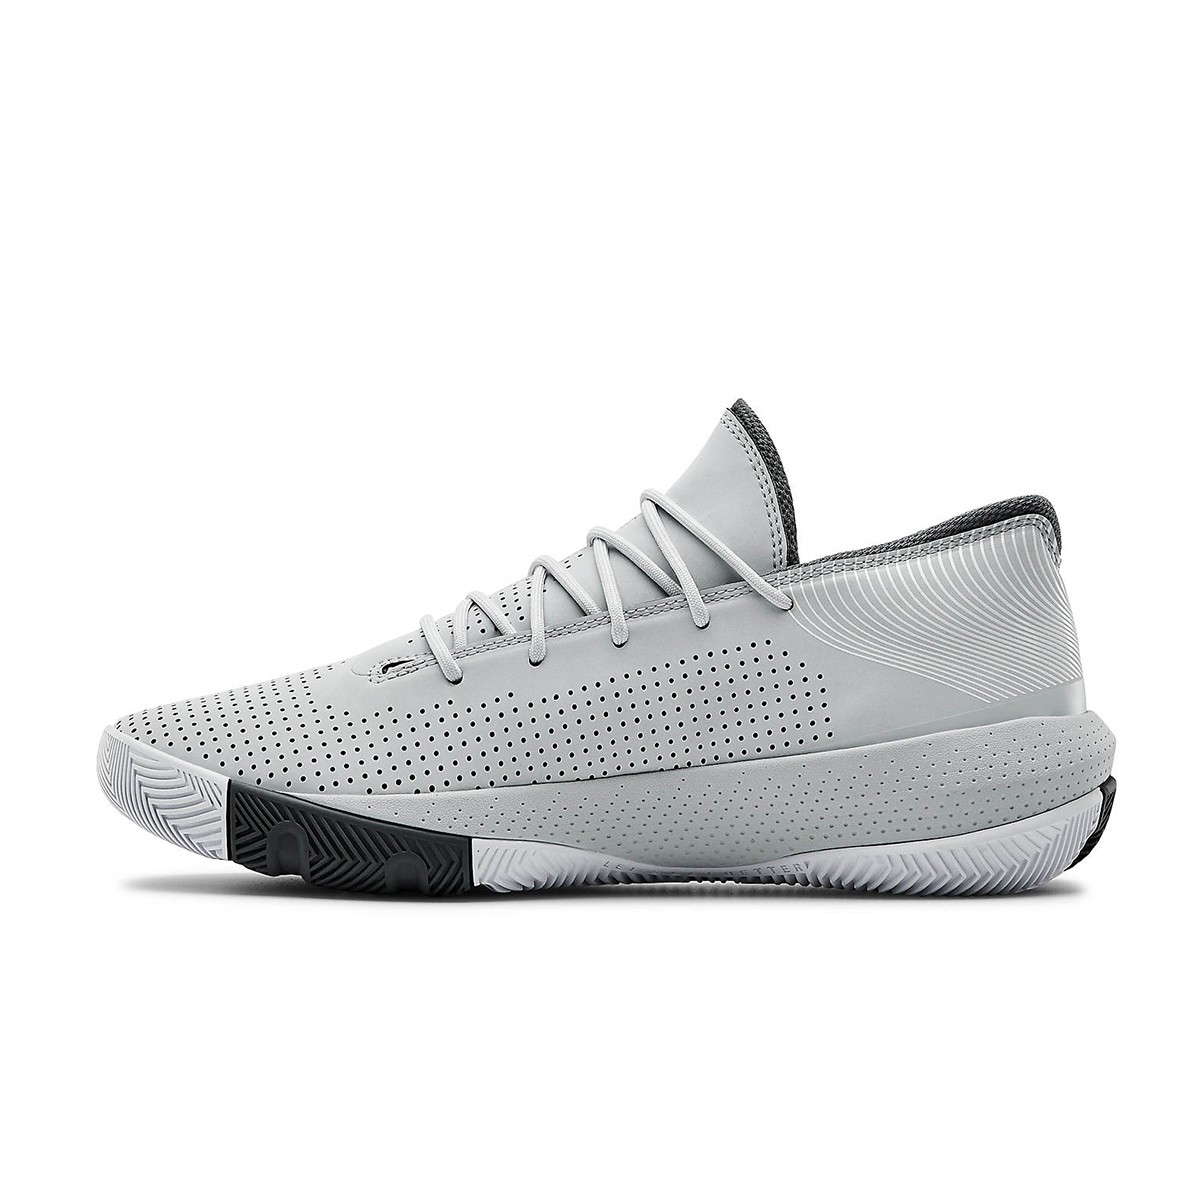 Under Armour SC 3ZER0 III GS 'Light Grey'-3022048-103-Jr